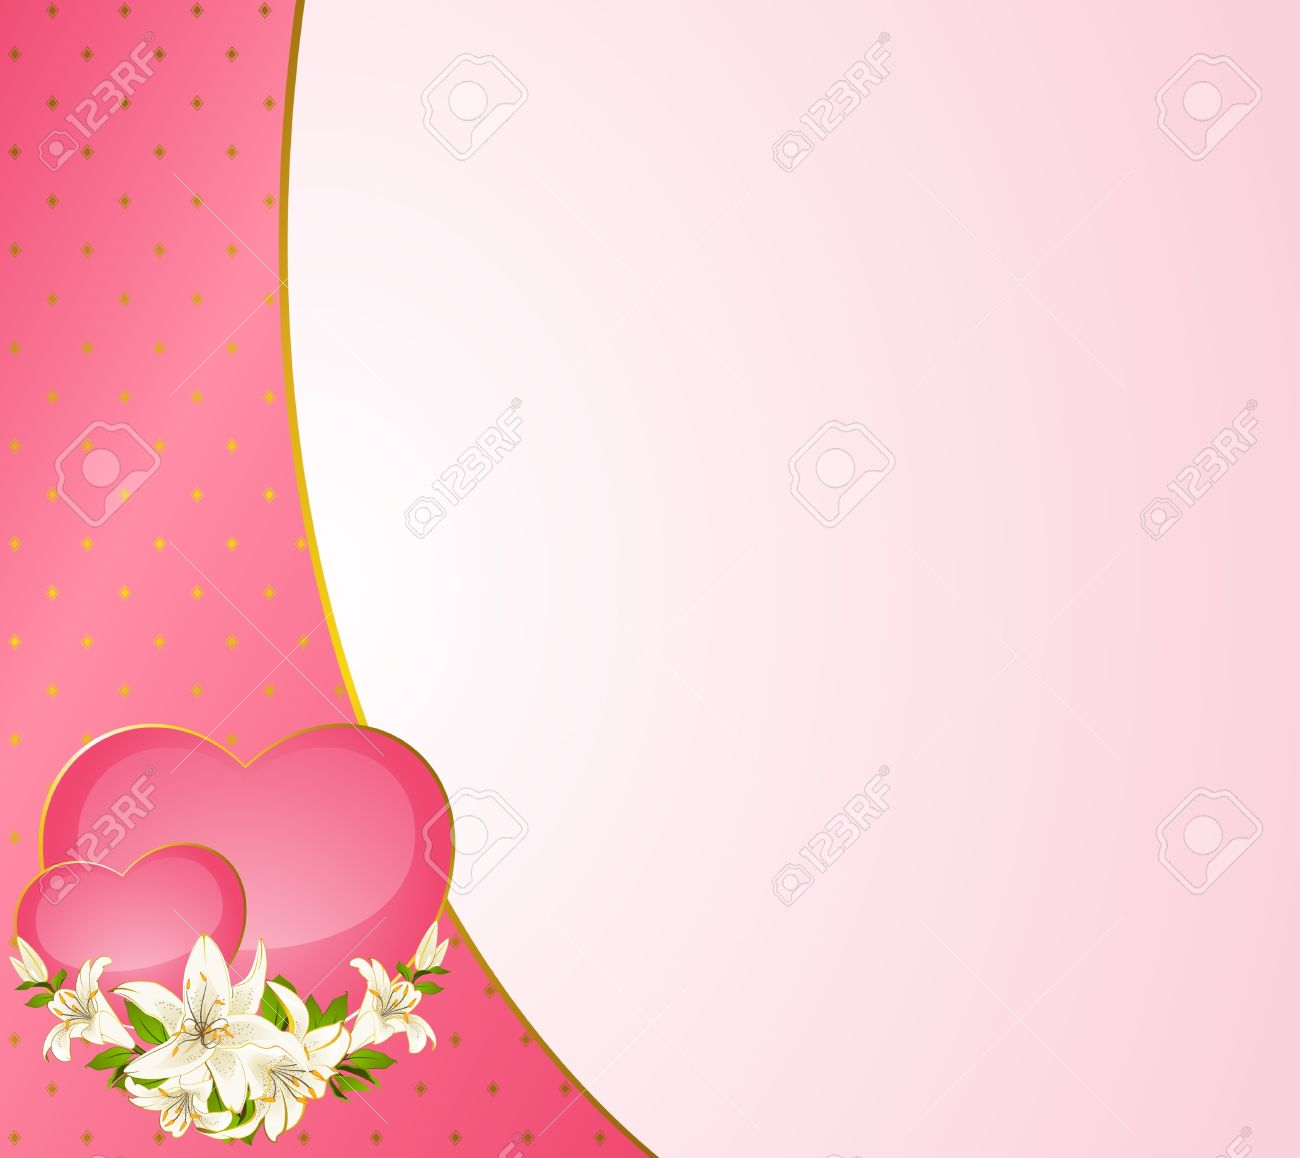 Wedding background card - invitation with hearts and flowers Stock Photo - 8888545